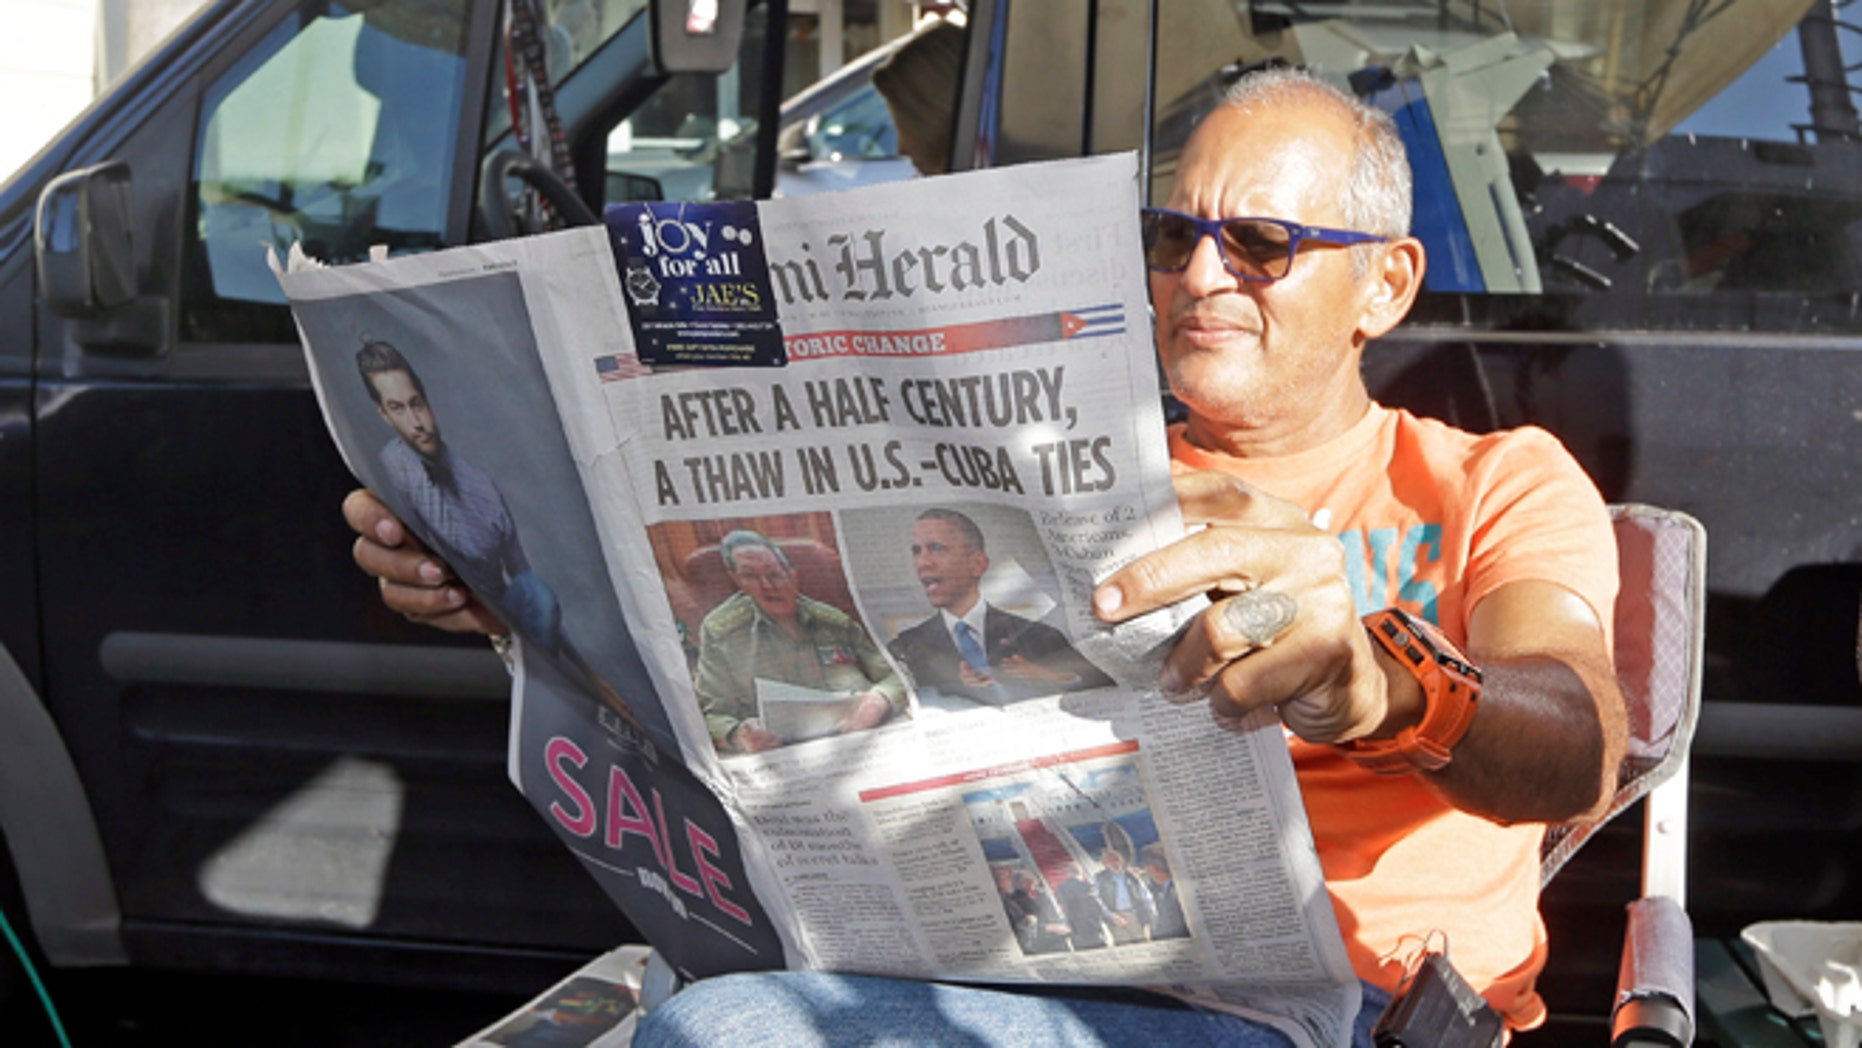 MSNBC photographer Tony Zumbado reads the Miami Herald in the Little Havana area of Miami, Thursday, Dec. 18, 2014, as news agencies from all over the world prepare to cover the reaction of the Cuban-Americans to the surprising move by President Barack Obama to restore the nation's ties with Cuba.  The U.S. and Cuba will begin taking steps to restore full diplomatic relations, marking the most significant shift in U.S. policy toward the communist island in more than half a century. (AP Photo/Alan Diaz)